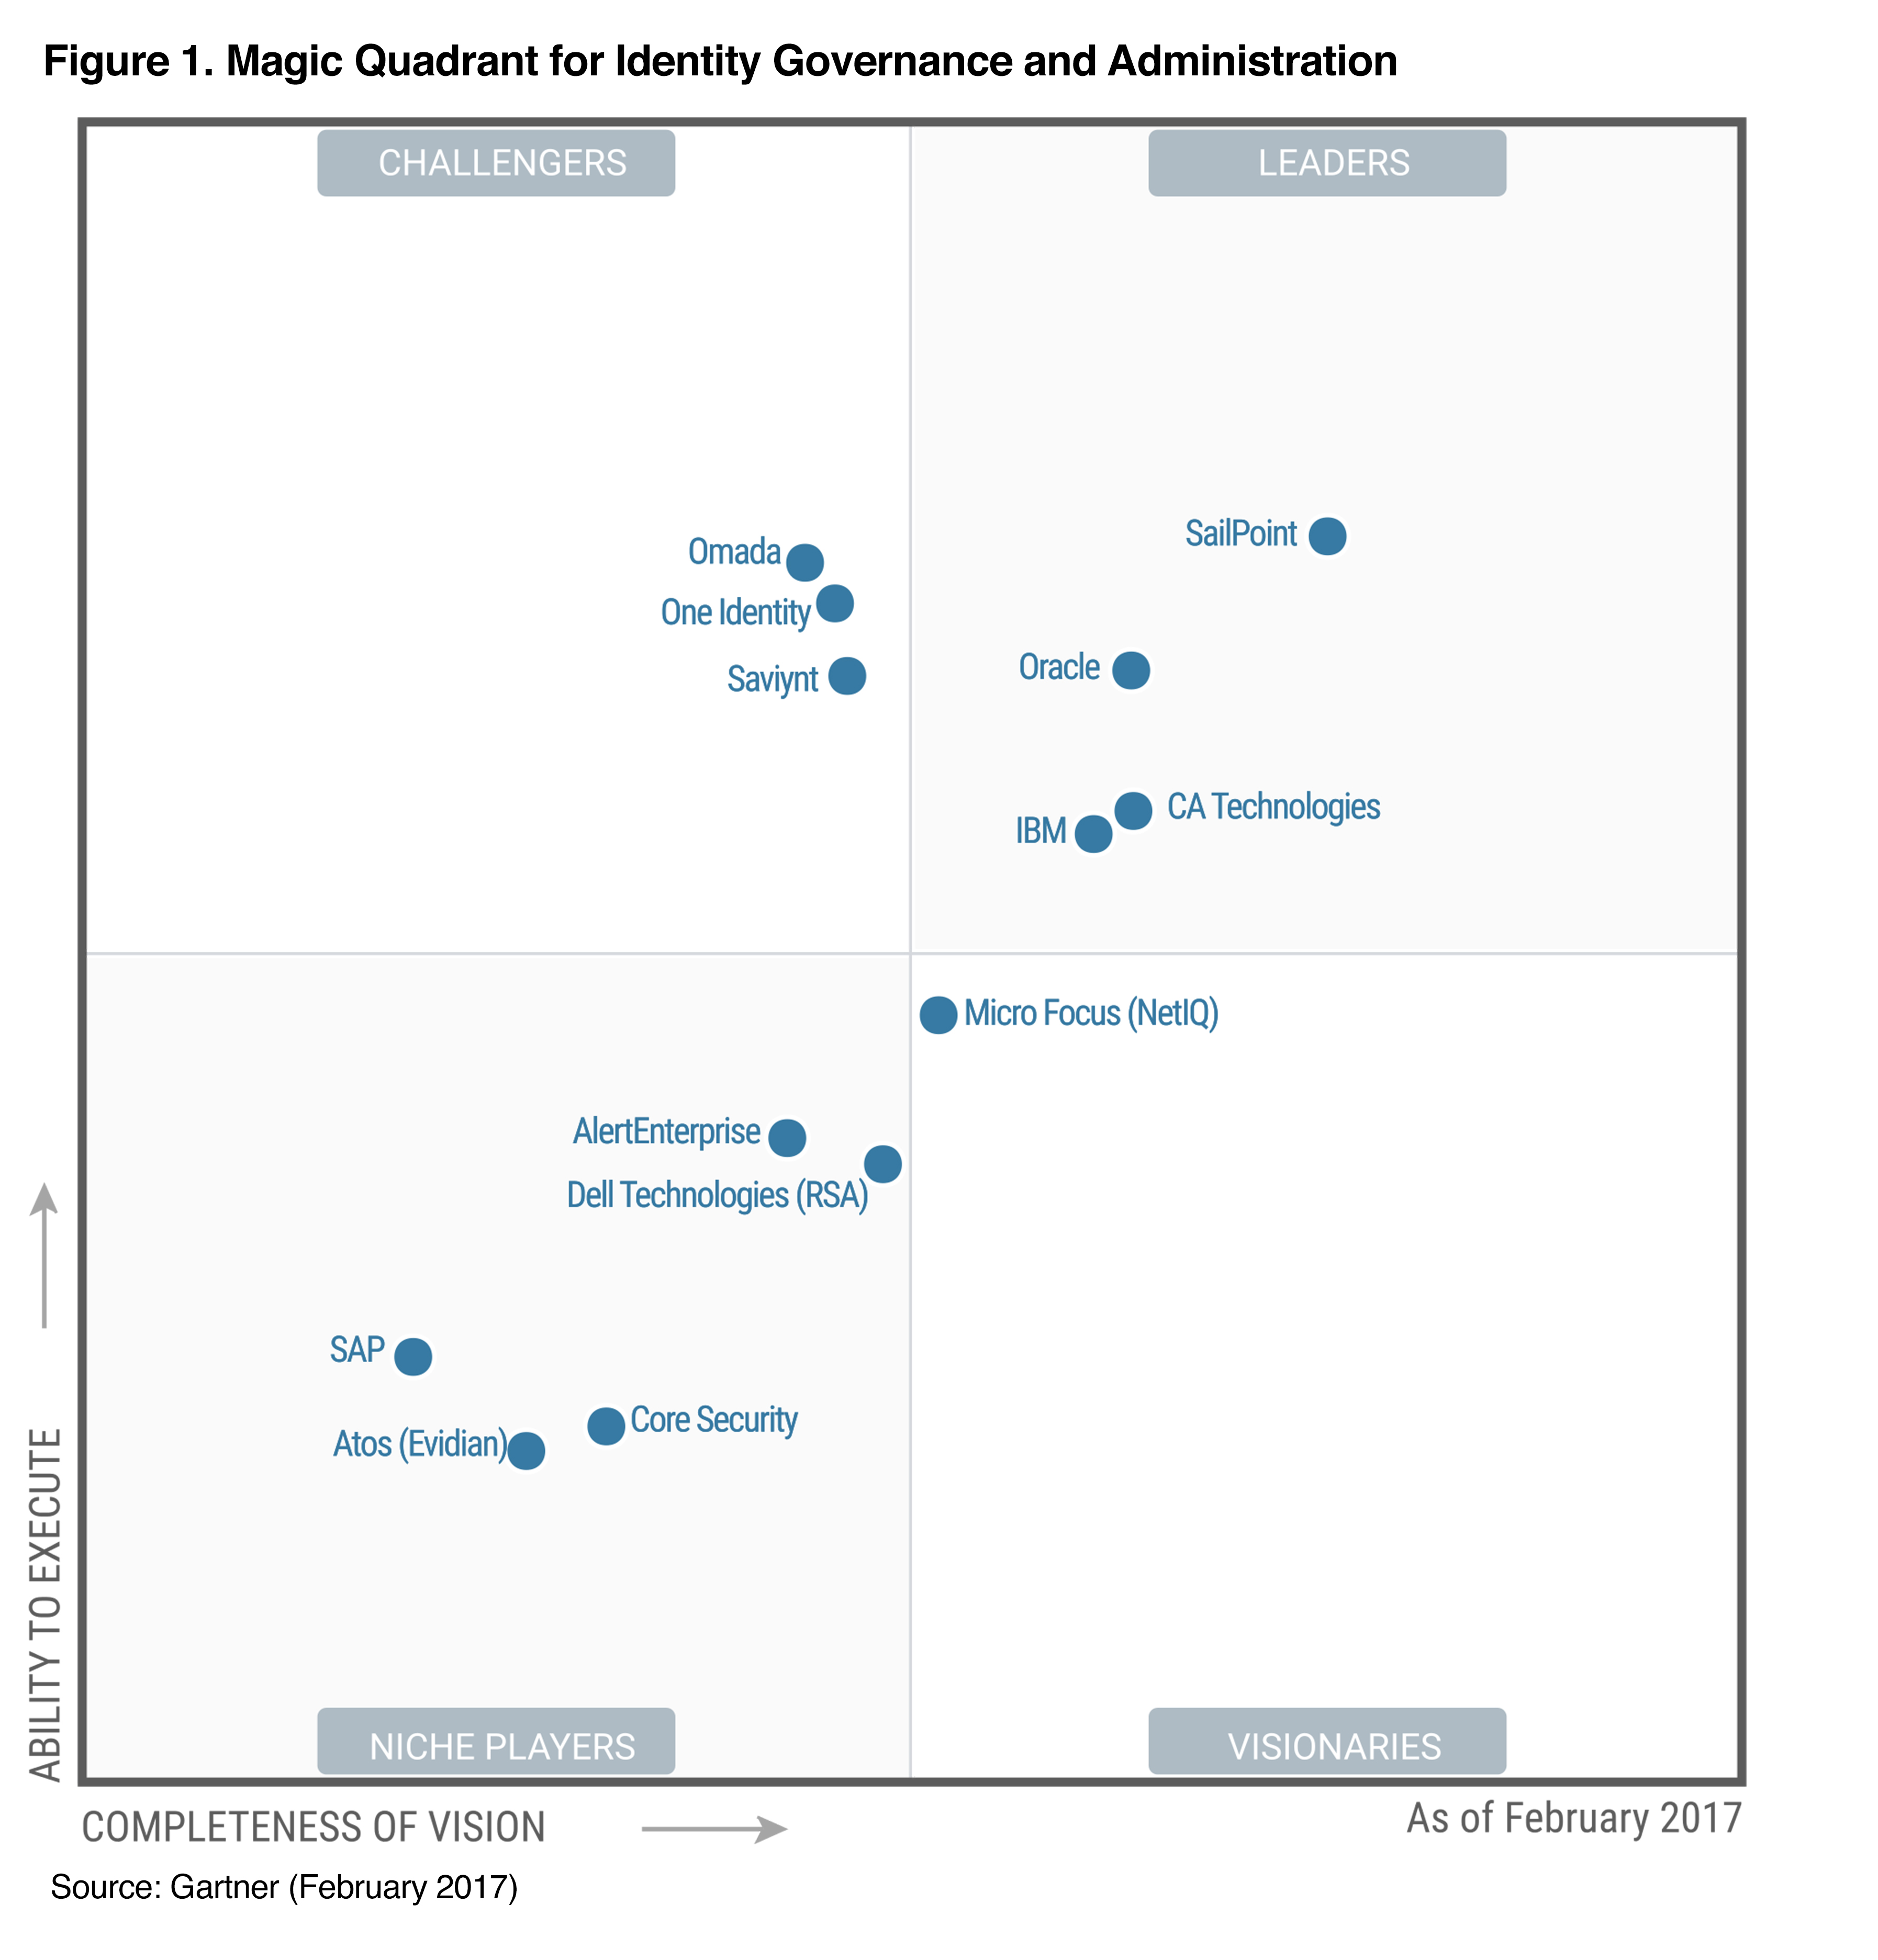 Omada Positioned Highest In The Quot Challengers Quot Quadrant Of